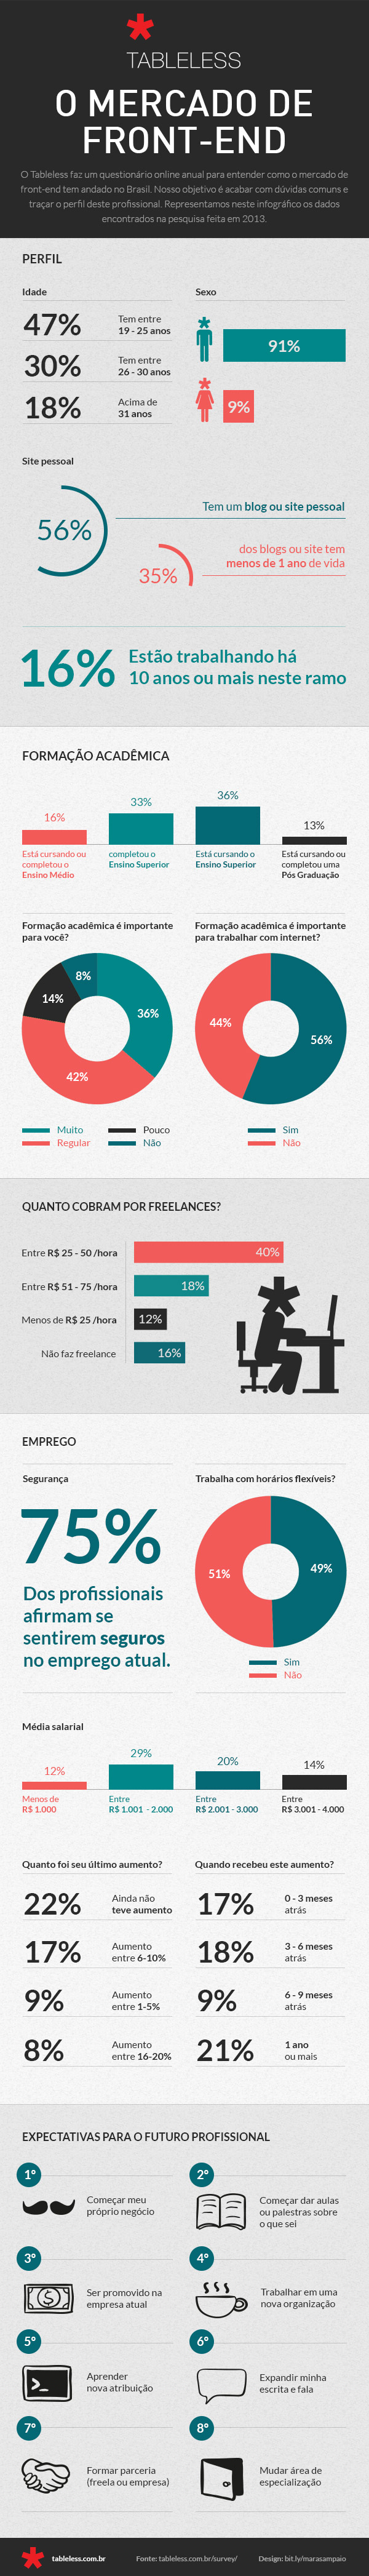 infografico_tableless-2013